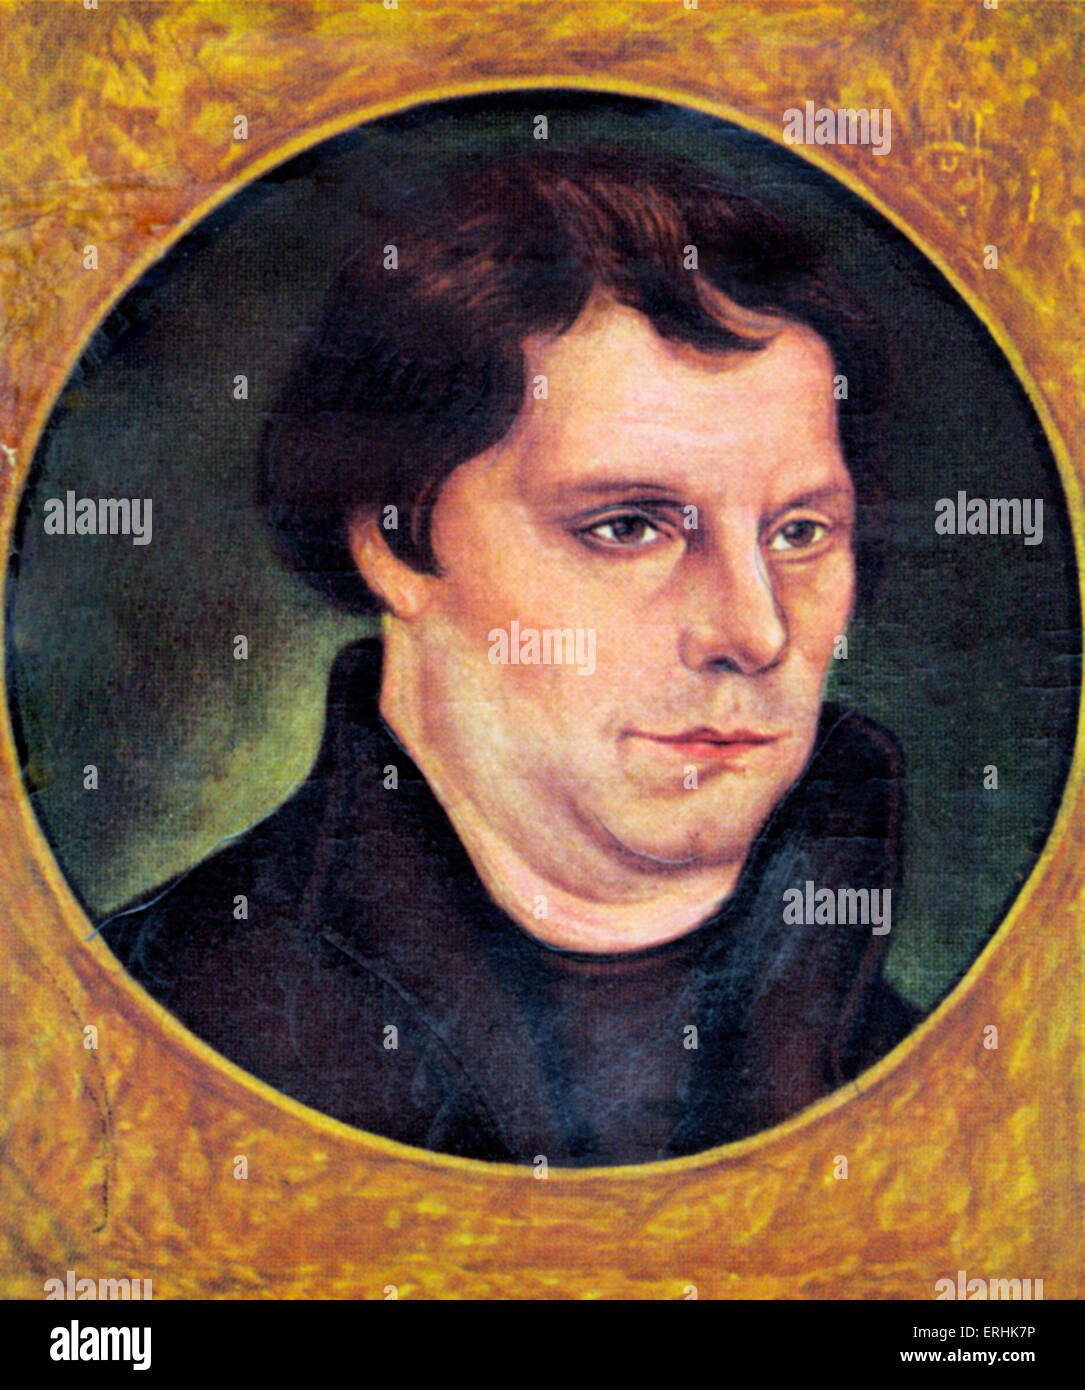 Martin luther monk